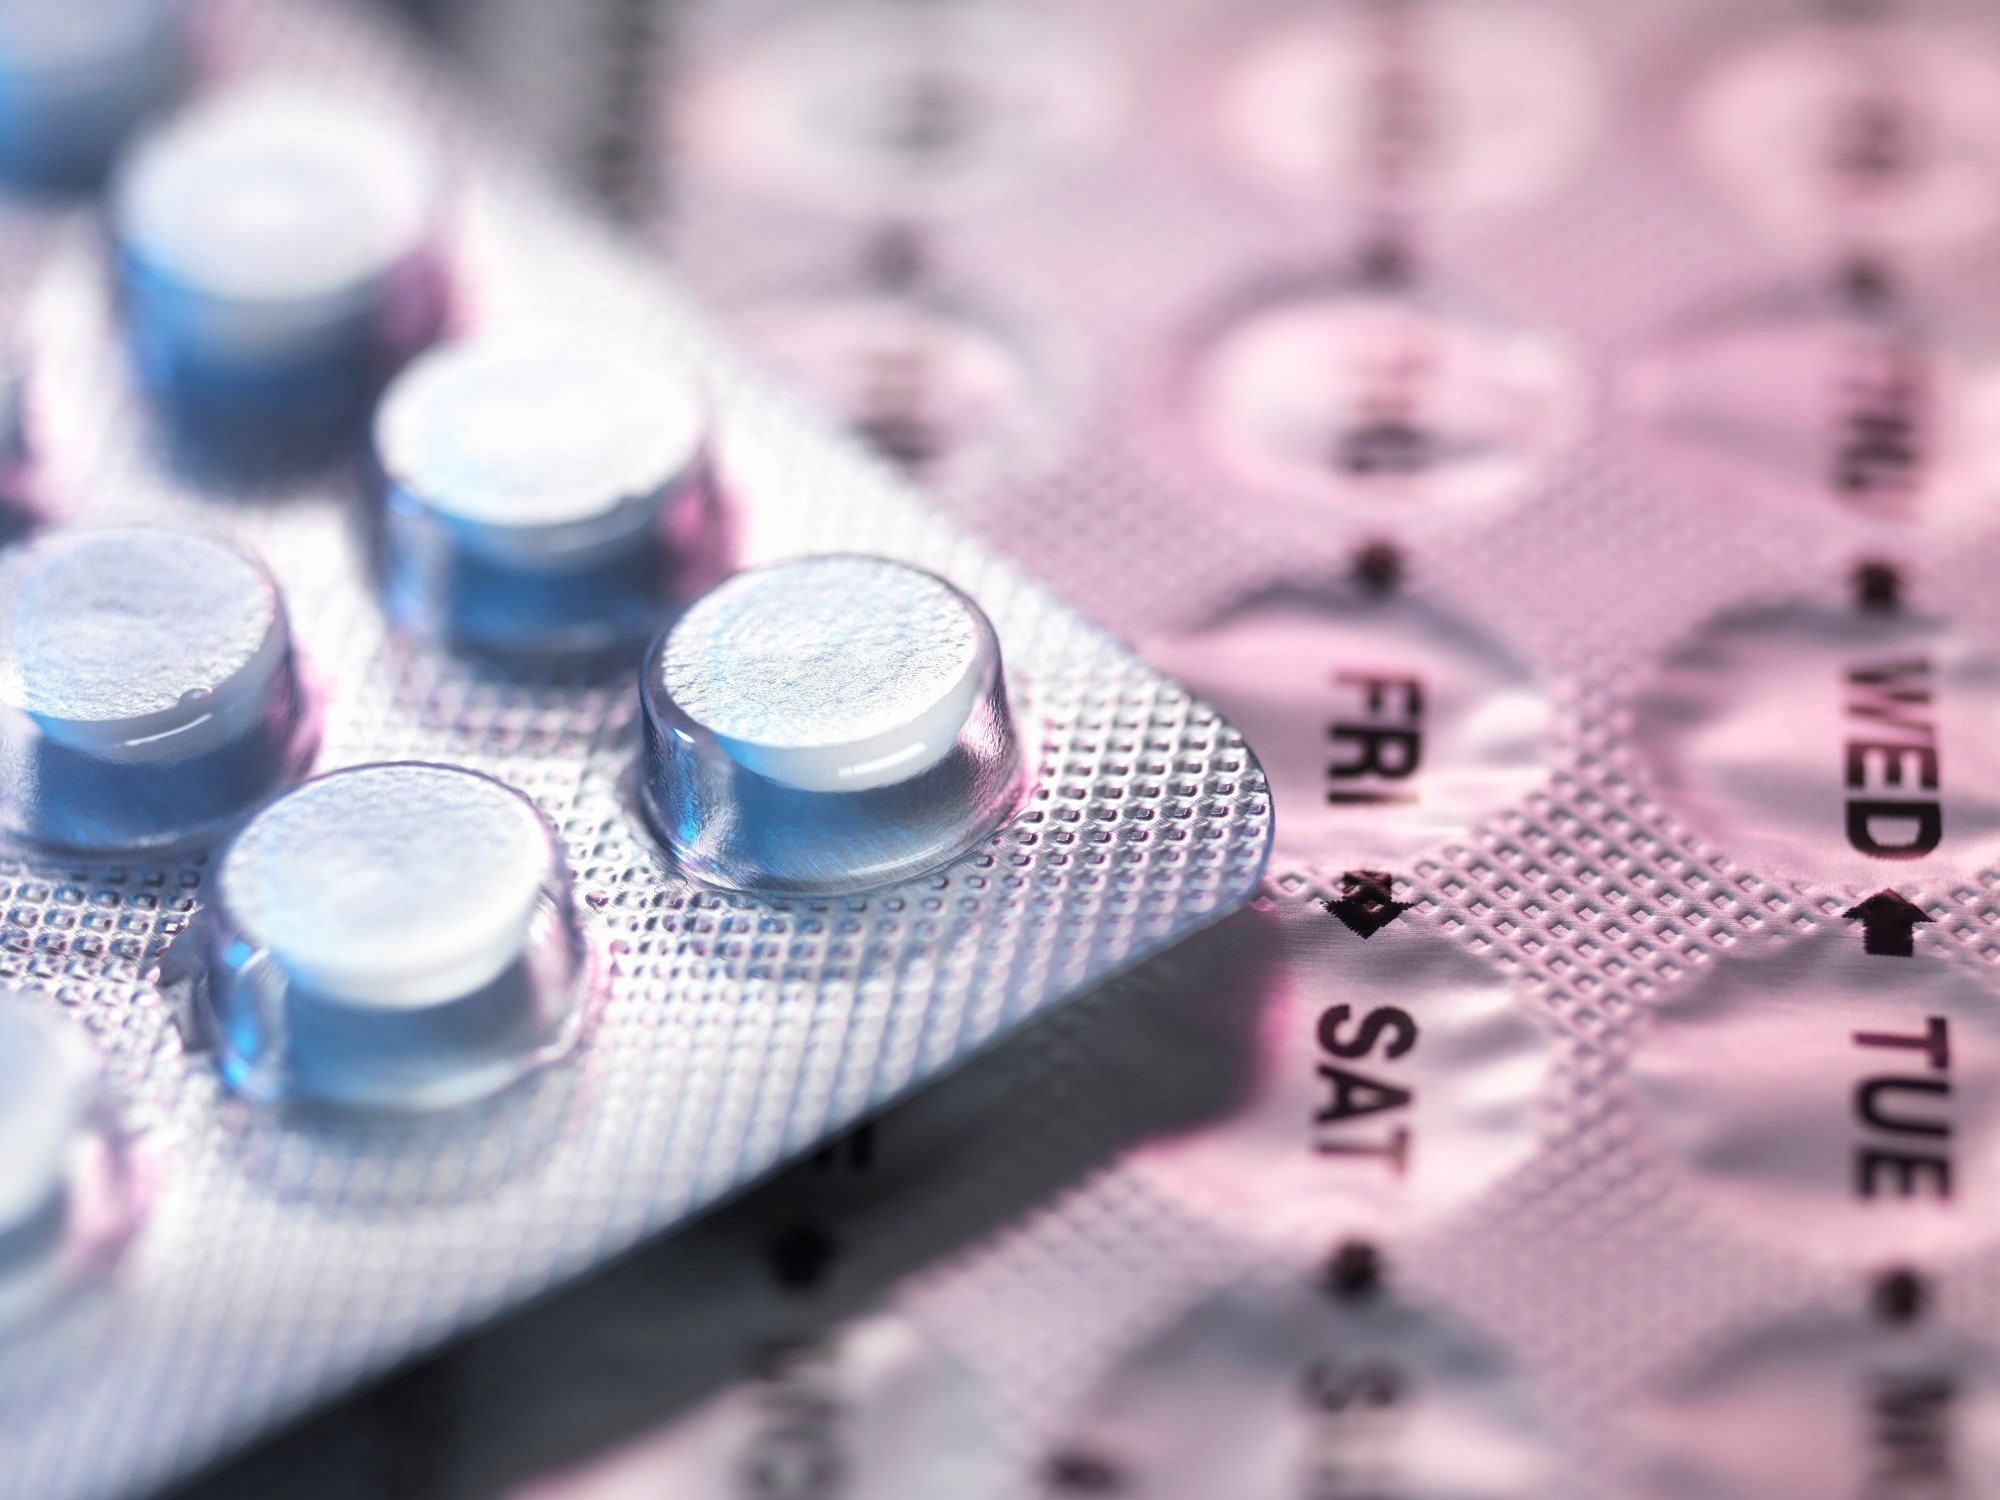 Current oral contraceptive products contain lower doses of estrogen than those used in the past, prompting reconsideration of risks and benefits.